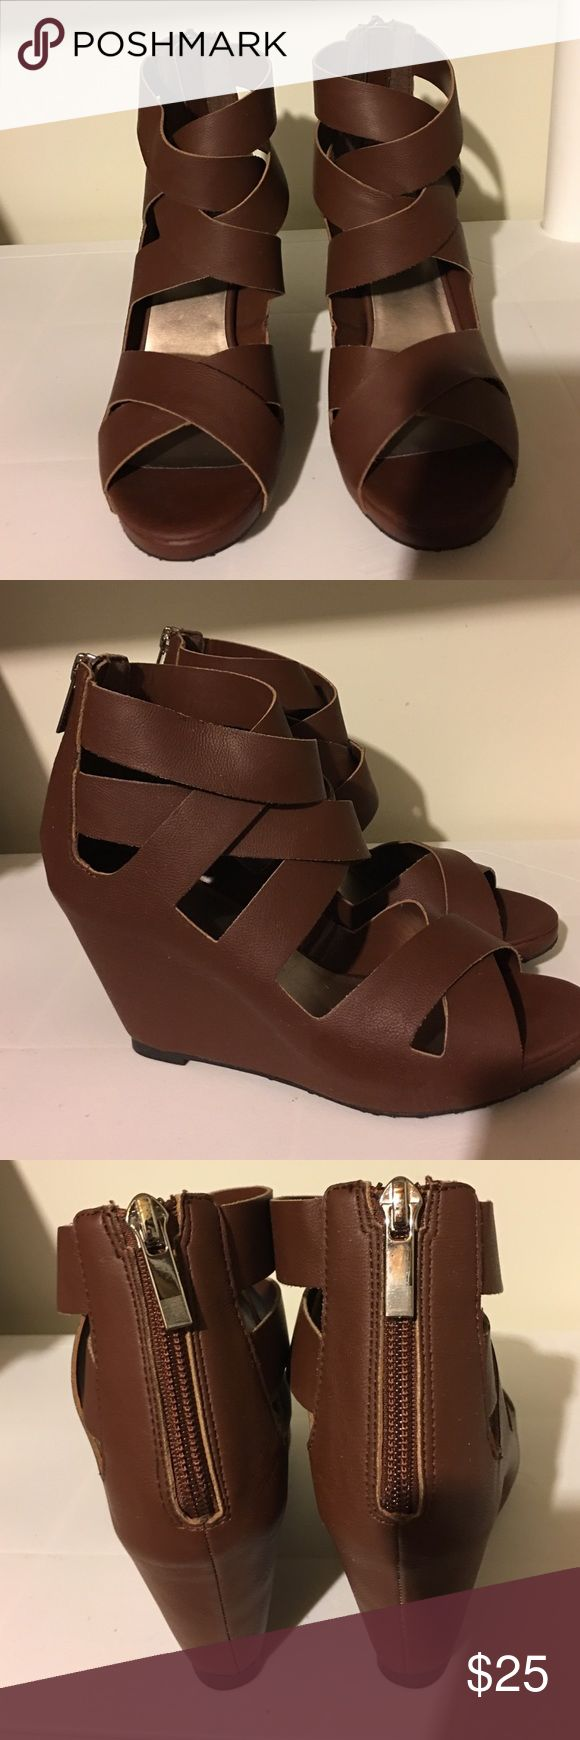 Like new Elle women shoes size 6.5 M Brown. Elle women shoes size 6.5 M Brown. I only wore once! They are too small for me. Smoke / Pet free home. Elle Shoes Platforms